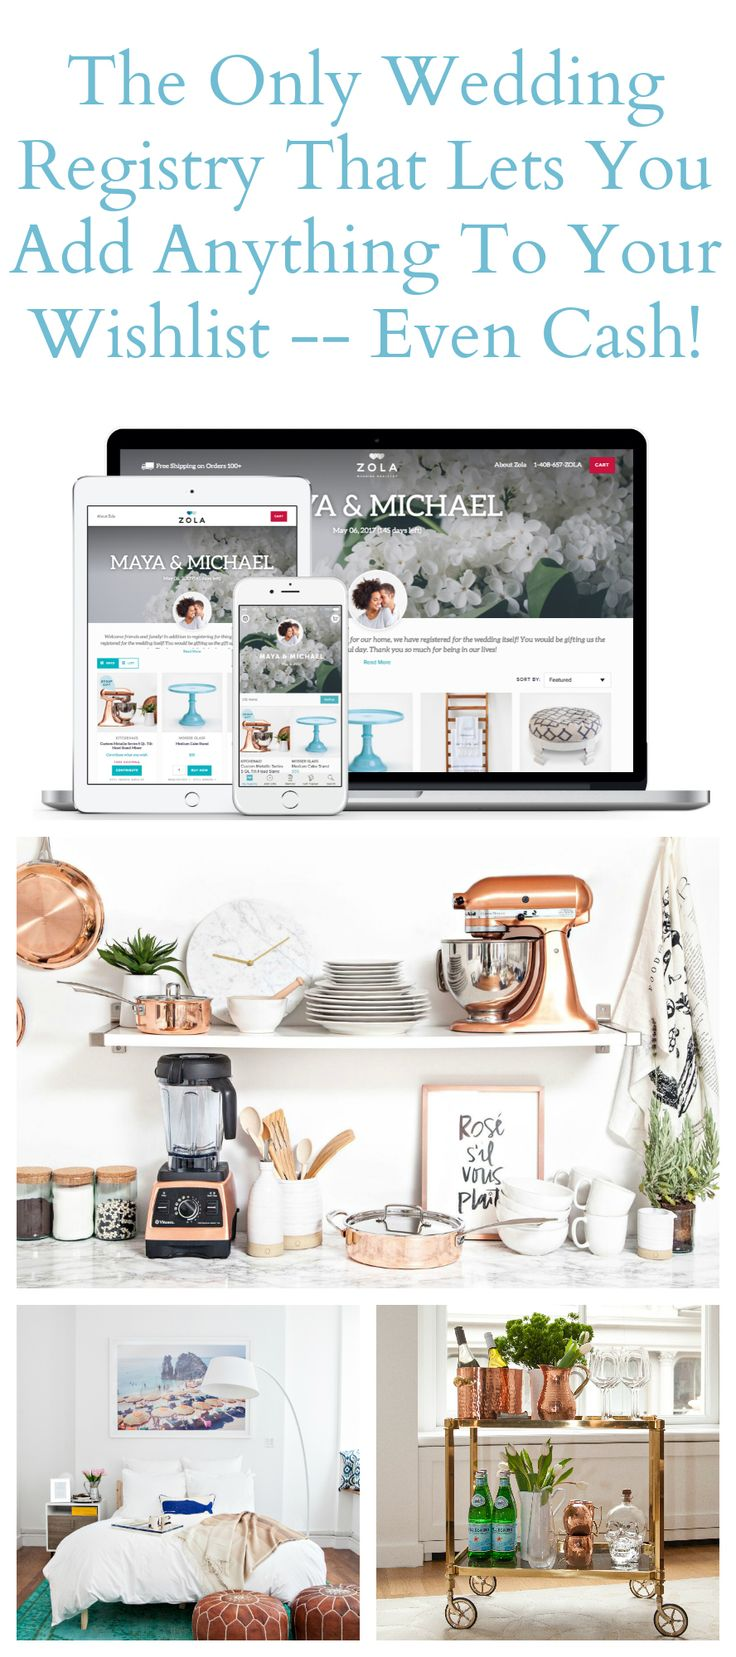 2551 best images about rustic wedding ideas on pinterest for Top 10 wedding registry stores